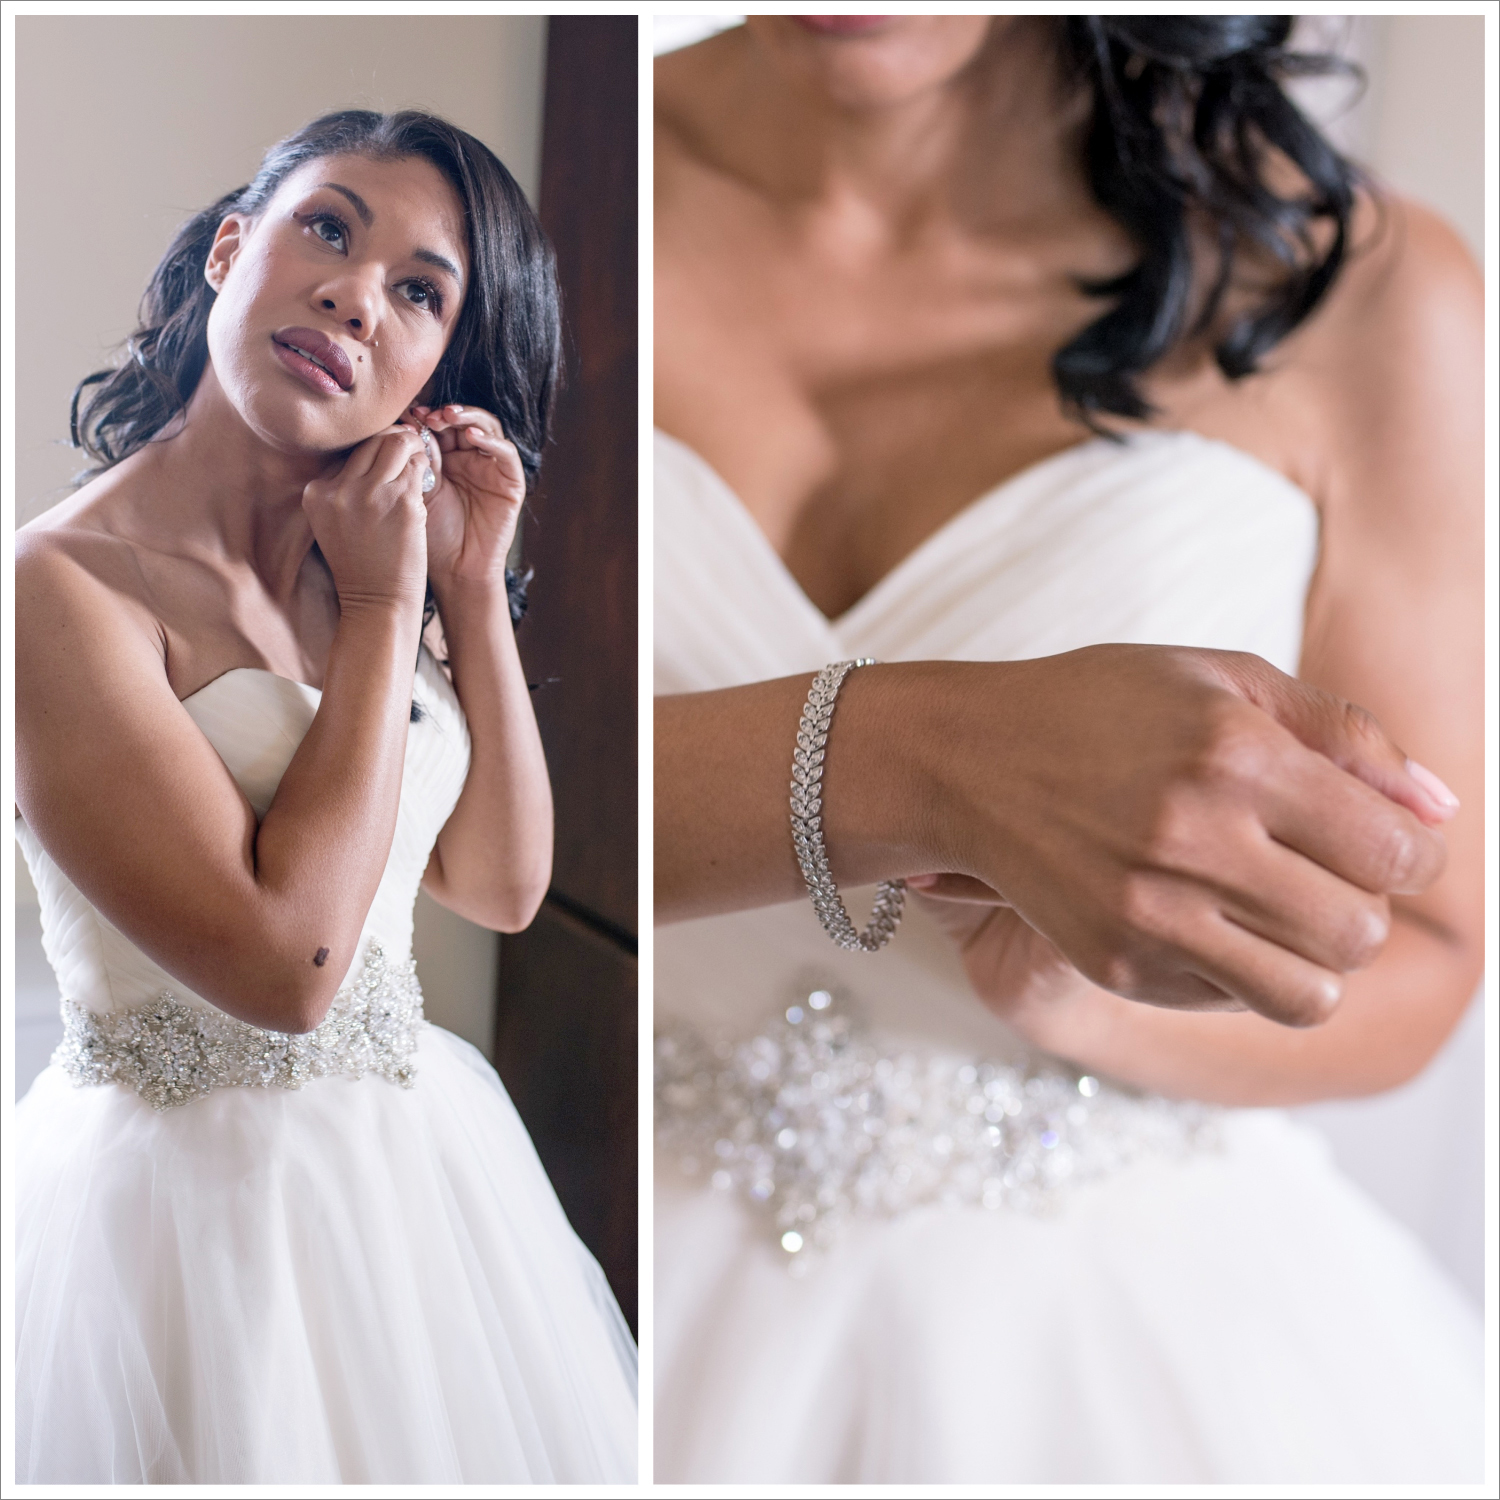 Stacey & Brian - Dreamy Wedding at Castle Hotel & Spa New York